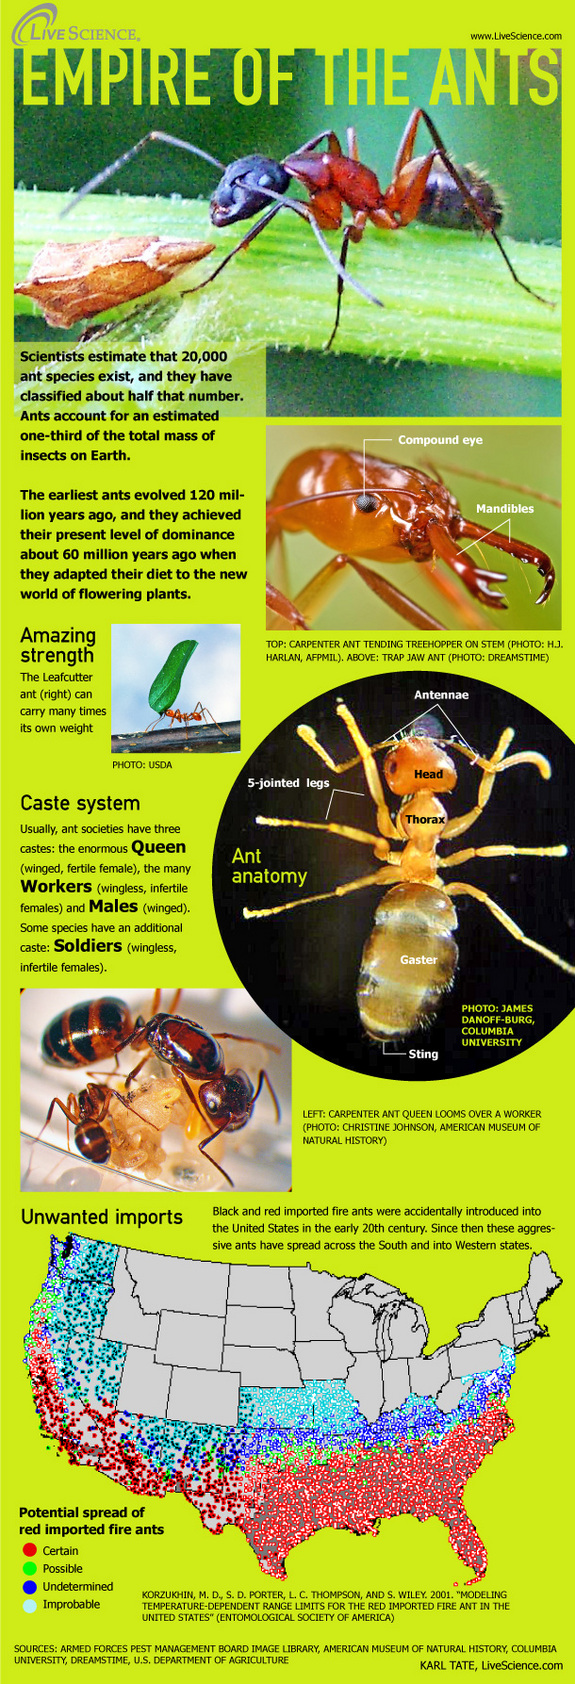 Interesting Facts About Fire Ants